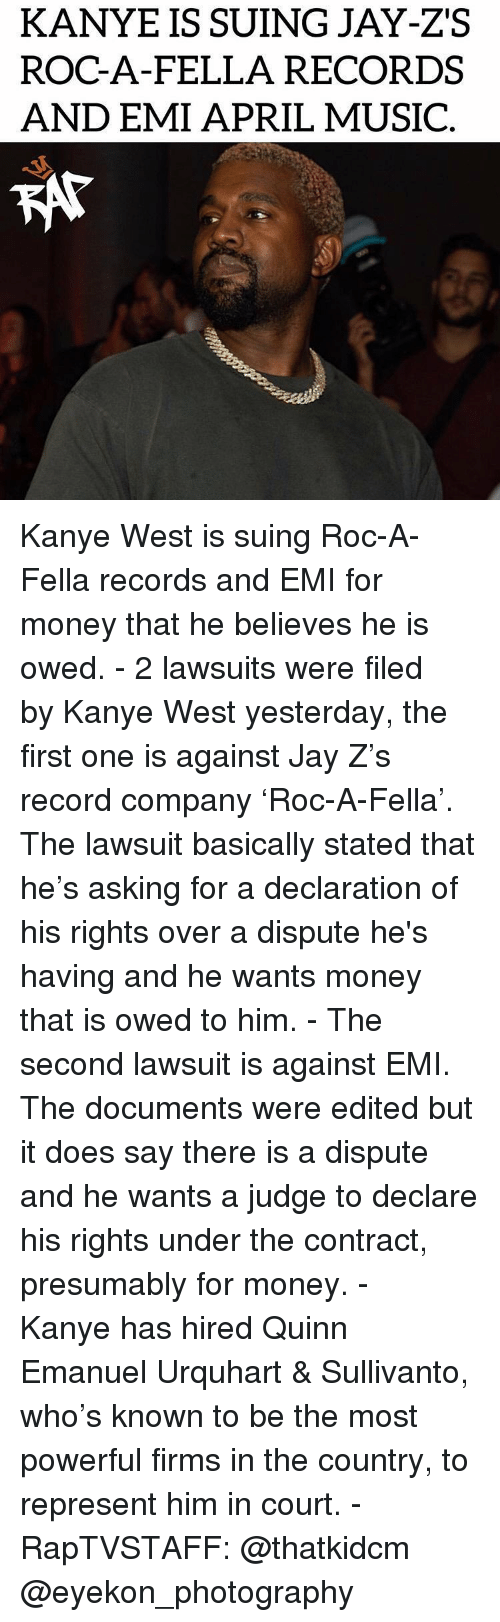 Jay Z: KANYE IS SUING JAY-ZS  ROC-A-FELLA RECORDS  AND EMI APRIL MUSIC  KAT Kanye West is suing Roc-A-Fella records and EMI for money that he believes he is owed.⁣ -⁣ 2 lawsuits were filed by Kanye West yesterday, the first one is against Jay Z's record company 'Roc-A-Fella'. The lawsuit basically stated that he's asking for a declaration of his rights over a dispute he's having and he wants money that is owed to him.⁣ -⁣ The second lawsuit is against EMI. The documents were edited but it does say there is a dispute and he wants a judge to declare his rights under the contract, presumably for money.⁣ -⁣ Kanye has hired Quinn Emanuel Urquhart & Sullivanto, who's known to be the most powerful firms in the country, to represent him in court.⁣ -⁣ RapTVSTAFF: @thatkidcm⁣ @eyekon_photography⁣